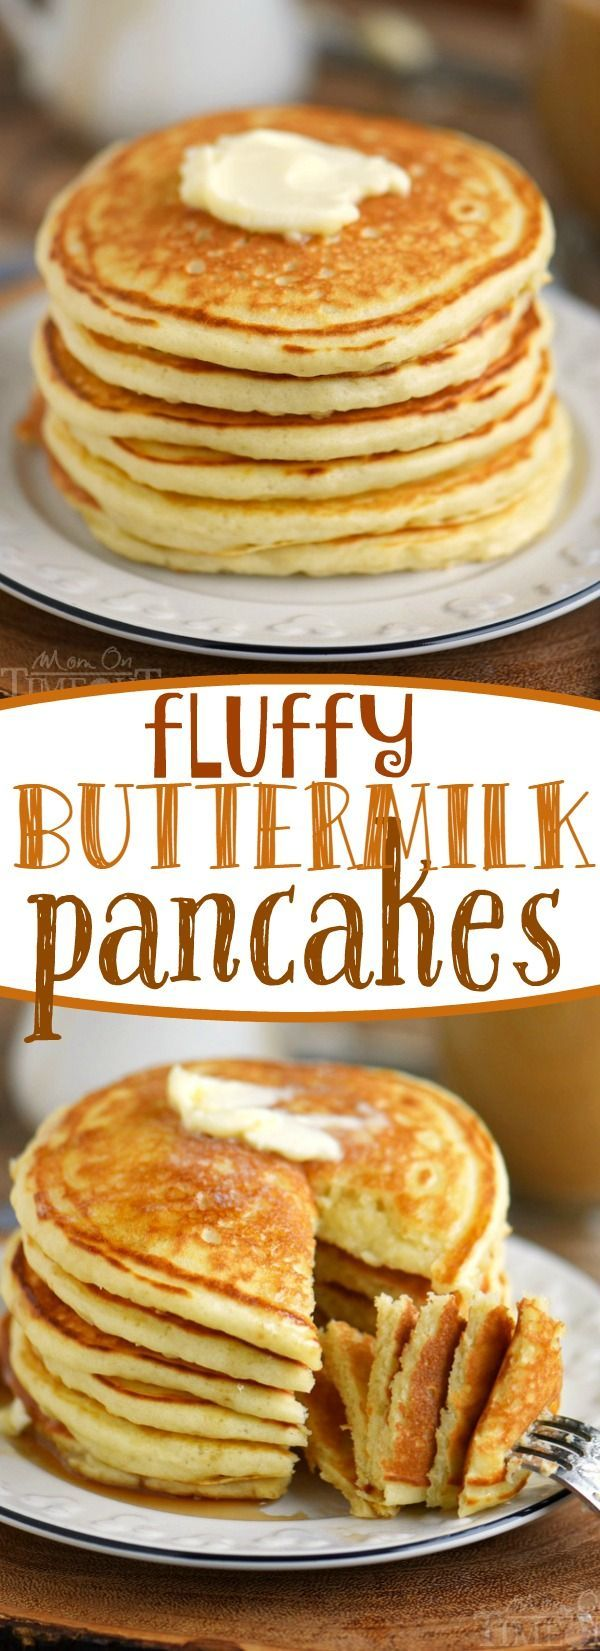 The BEST Fluffy Buttermilk Pancakes Youll Ever Try This Easy To Follow Recipe Pancake RecipesBreakfast Ideas Without EggsBest